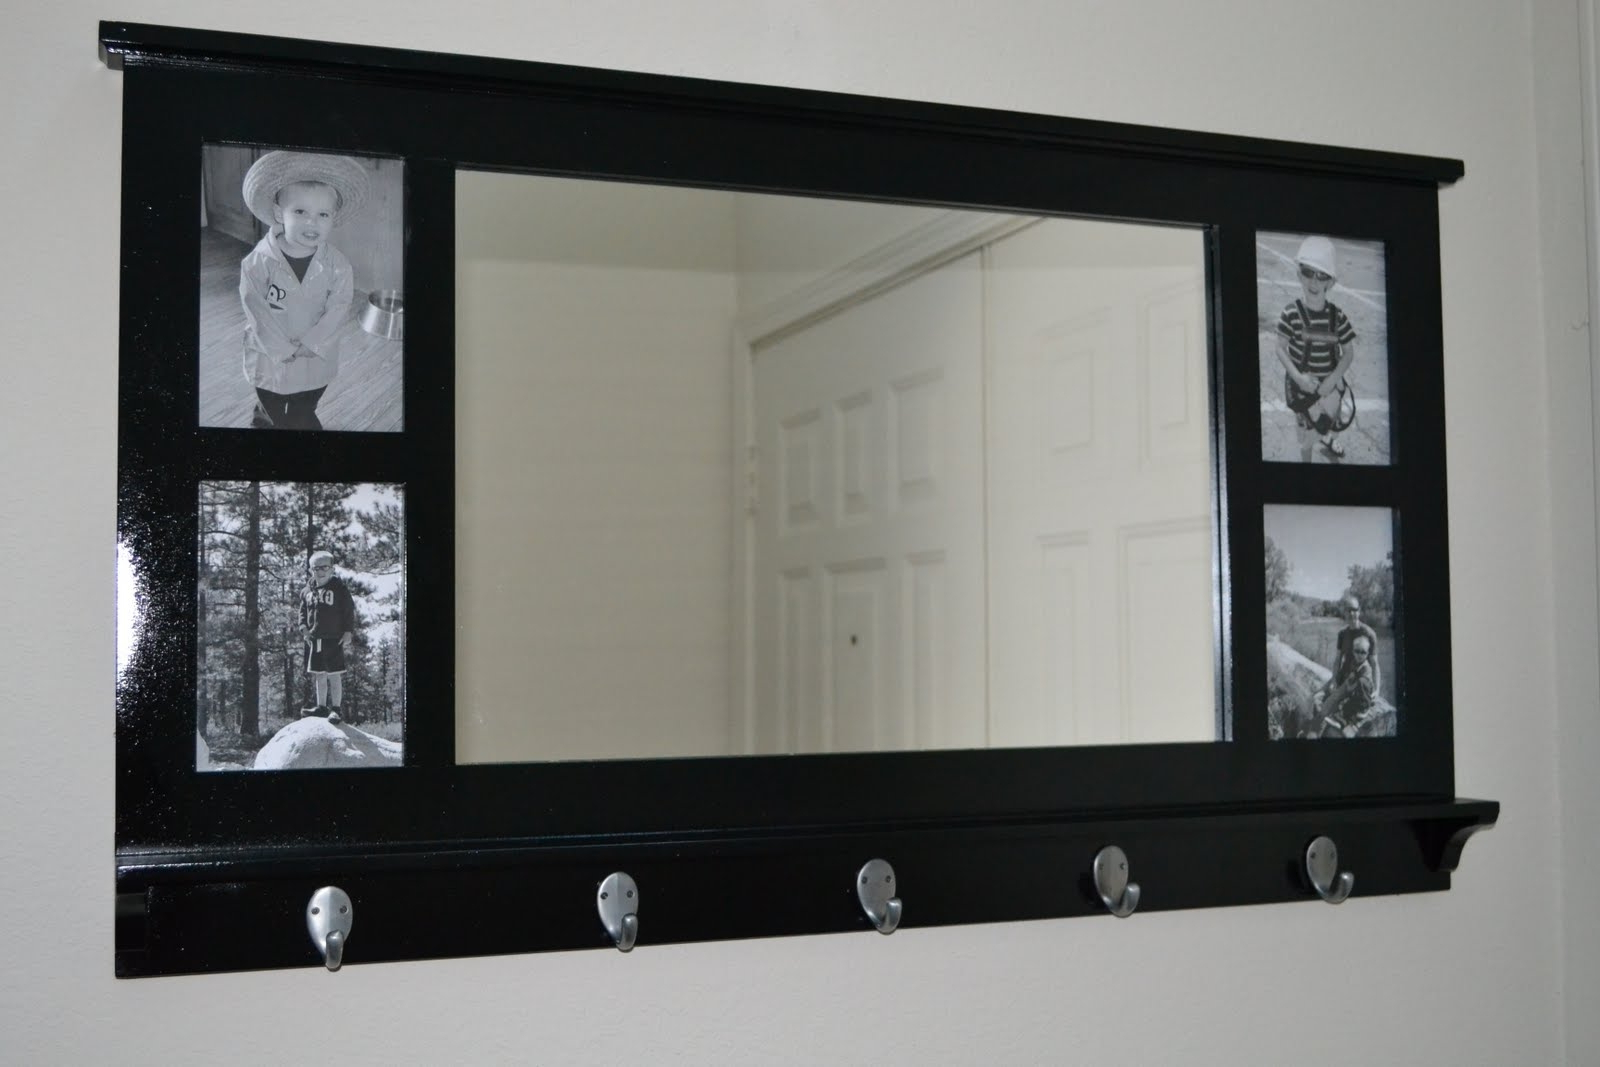 Wall Shelves With Mirror And Hooks – Webfaceconsult With Regard To Preferred Wall Mirrors With Hooks (View 3 of 20)